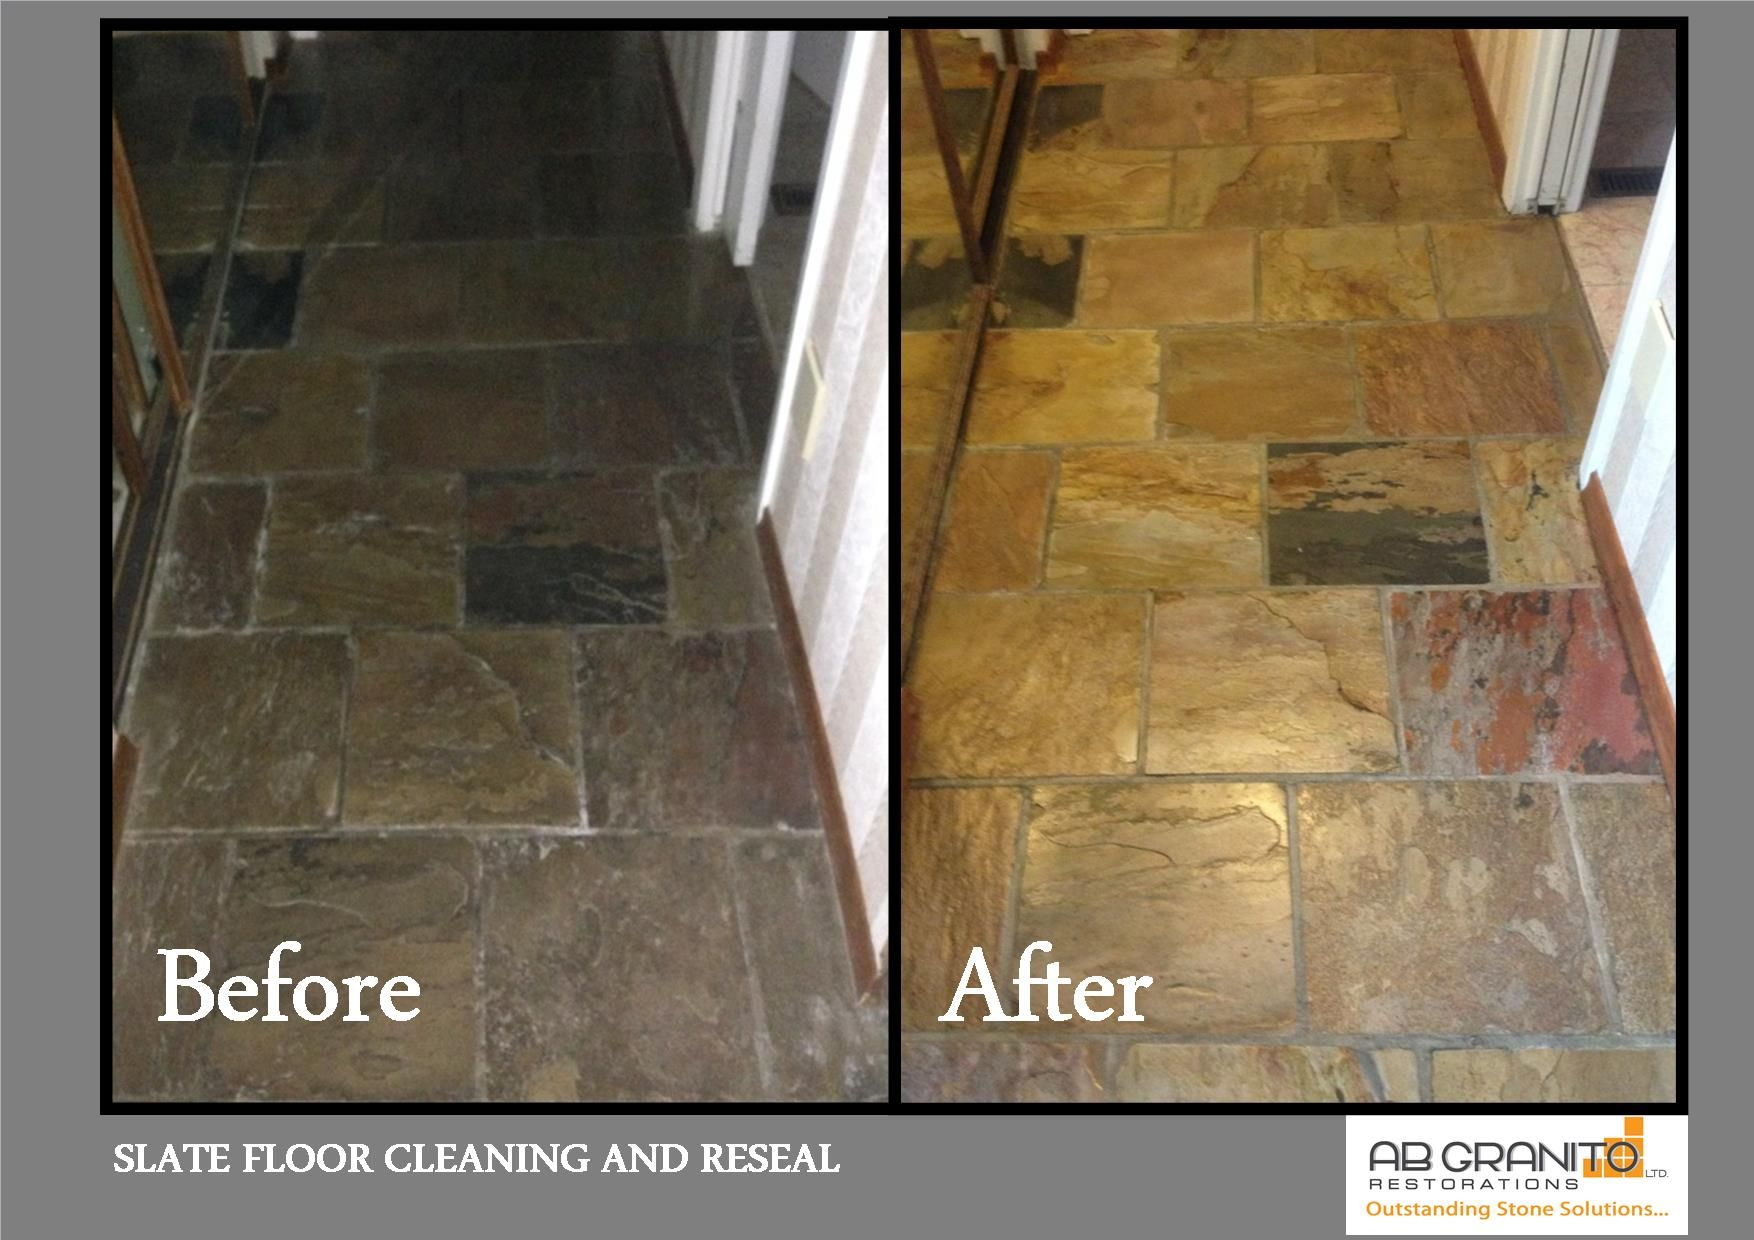 Slate floor deep cleaning and restoration floors showers slate floor deep cleaning and restoration floors showers restorations natural stones pinterest slate flooring restoration and showers dailygadgetfo Image collections